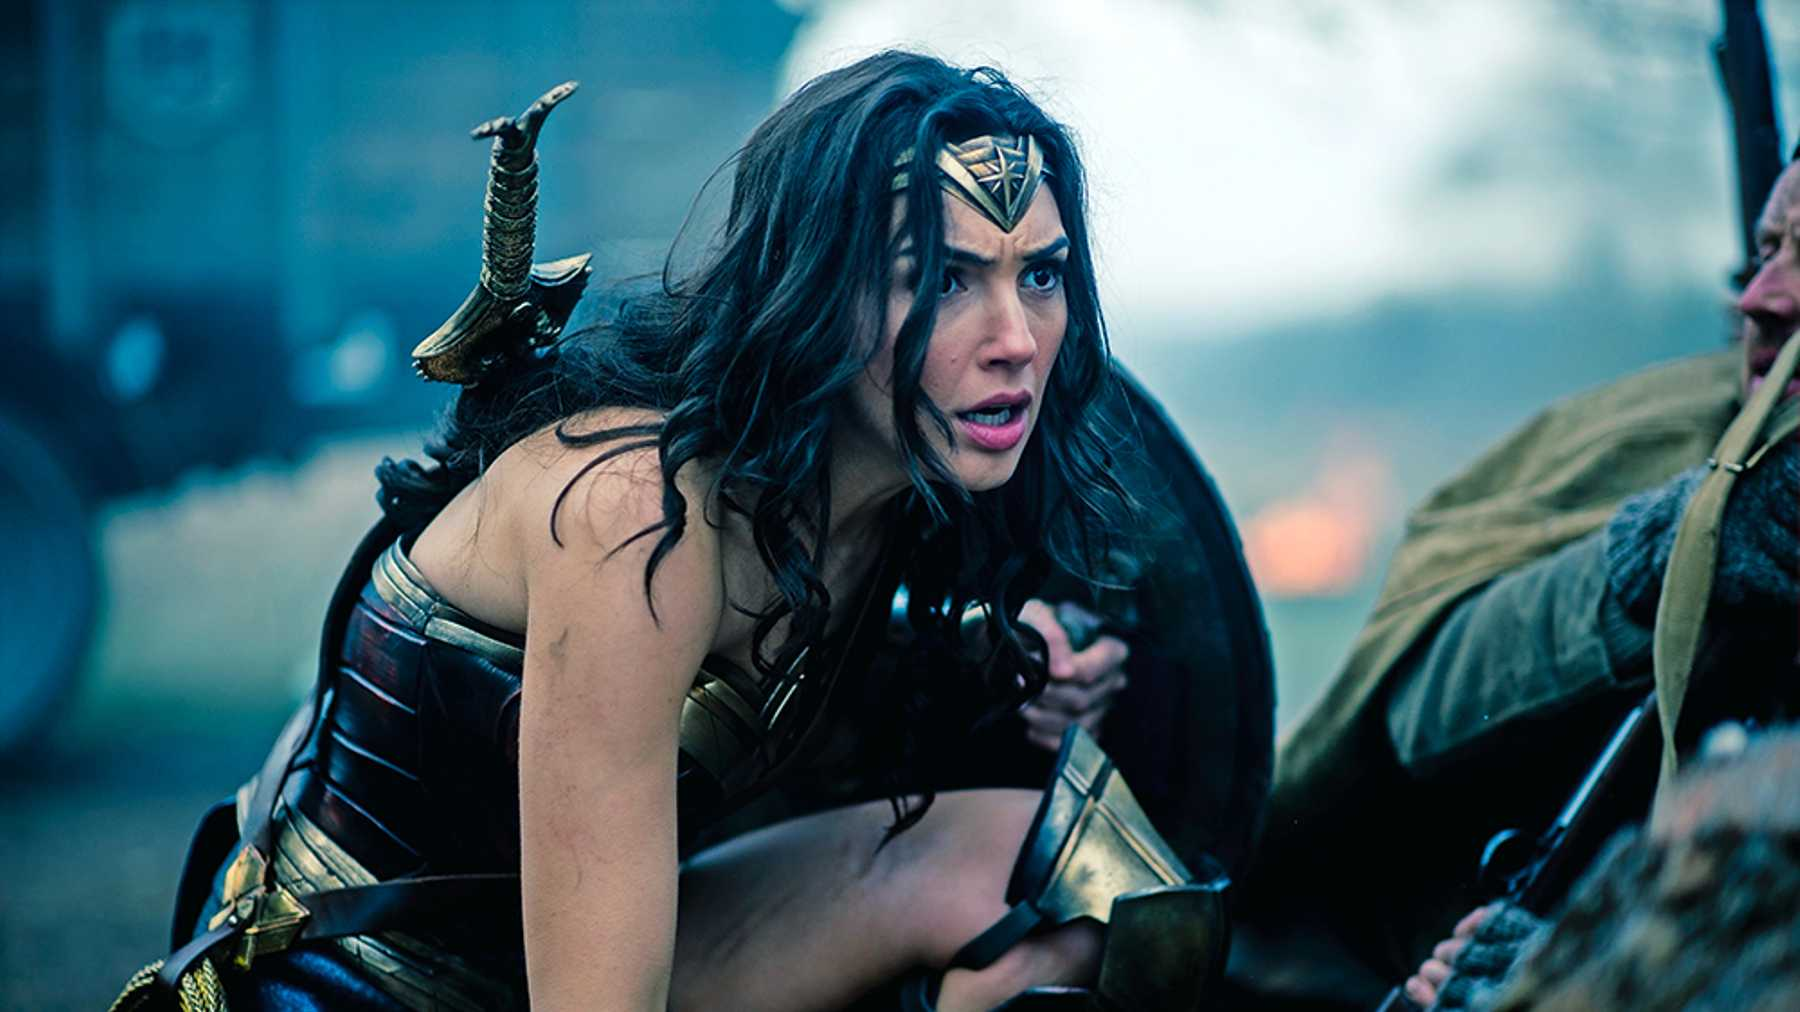 movie 2017 Wonder Woman is about what it means to be a good hero, morals, and justice, flawed human nature, Patty Jenkins Gal Gadot